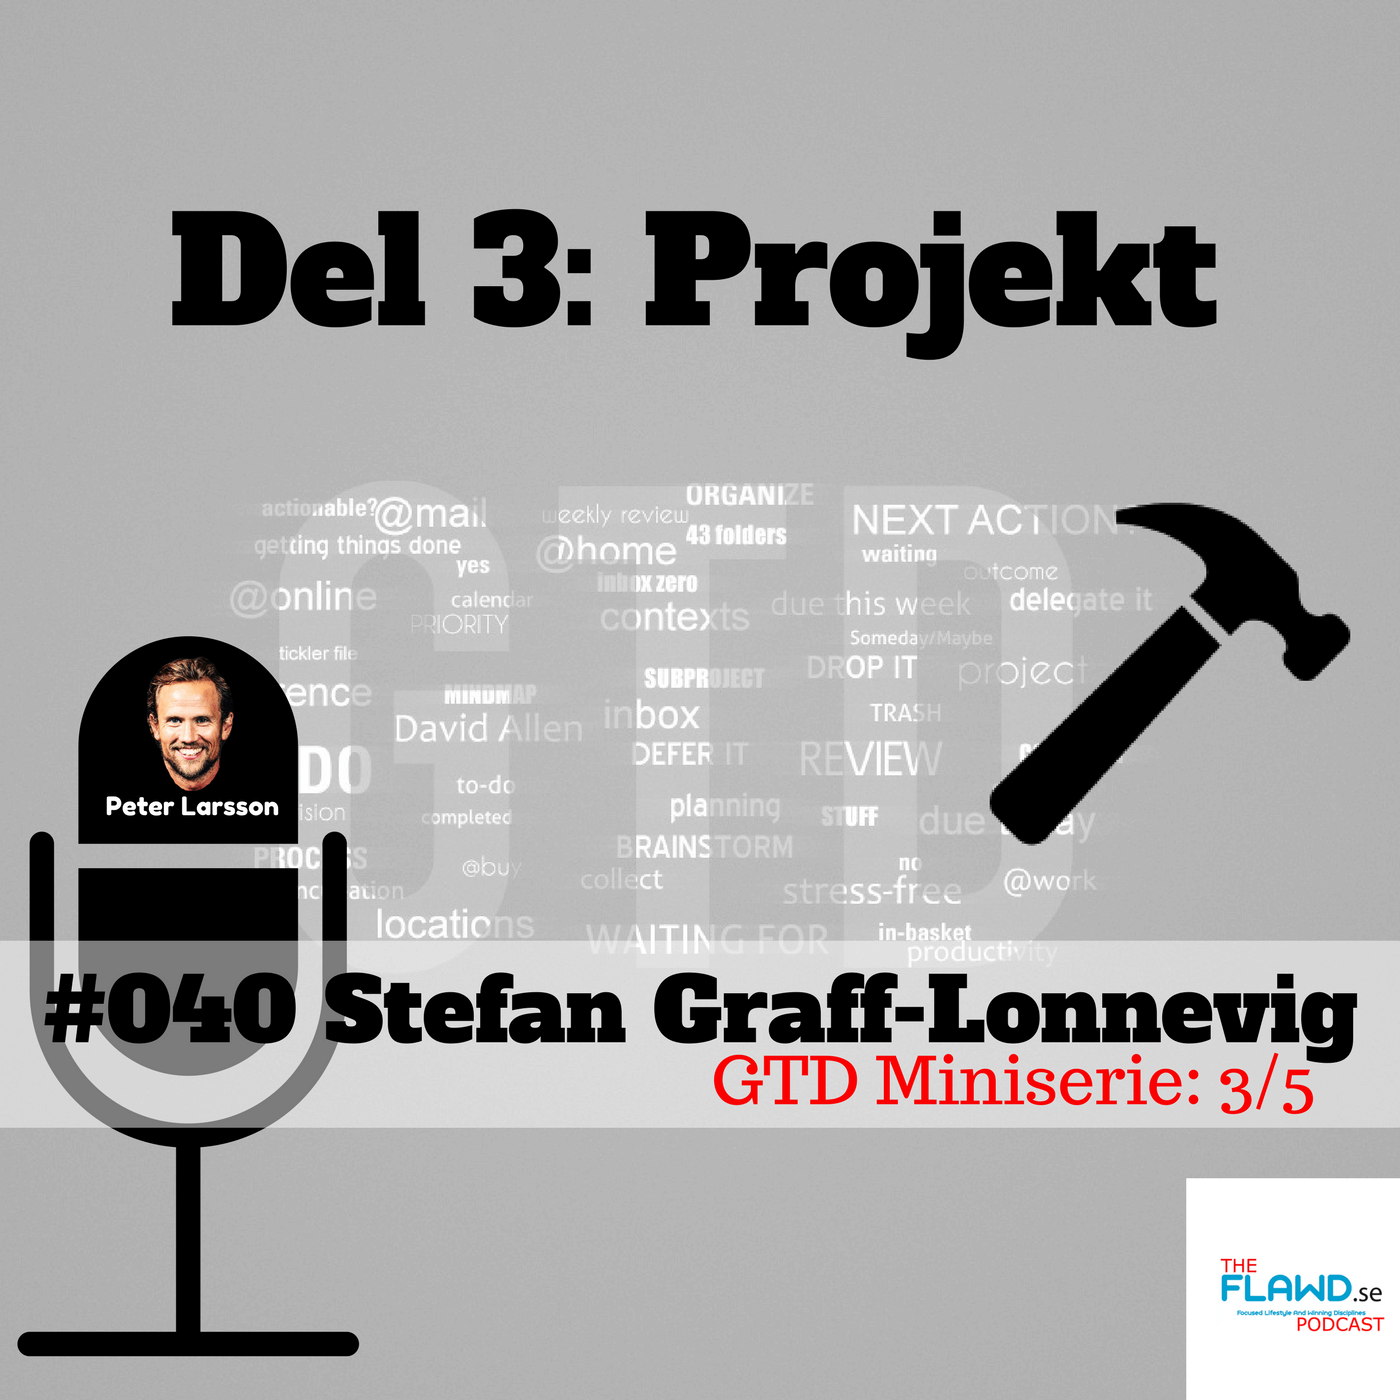 Stefan Graff-Lonnevig – GTD miniserie del 3 av 5  – Projekt – The FLAWD podcast (#040)